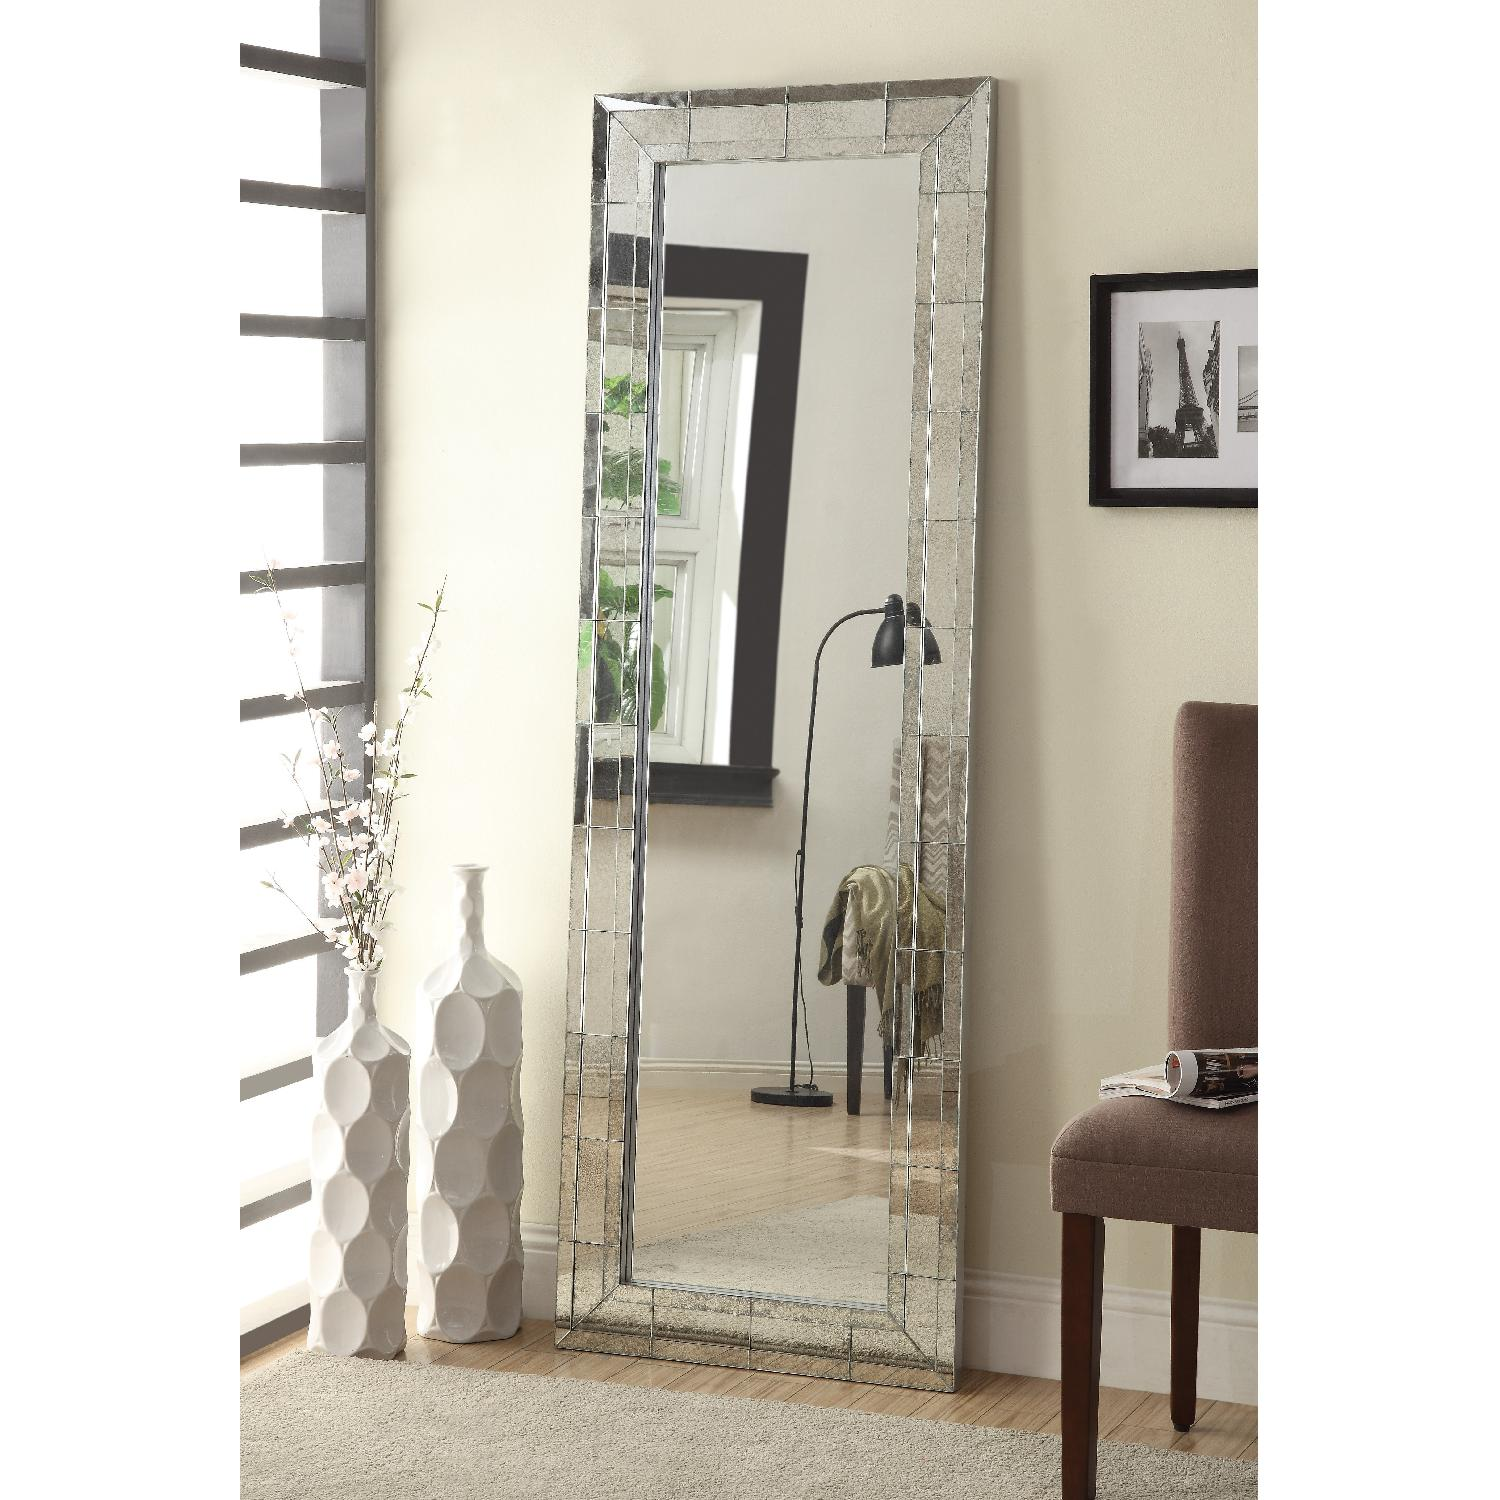 Full Length Mirror w/ Eclectic Vintage Style Mirrored Frame - image-1